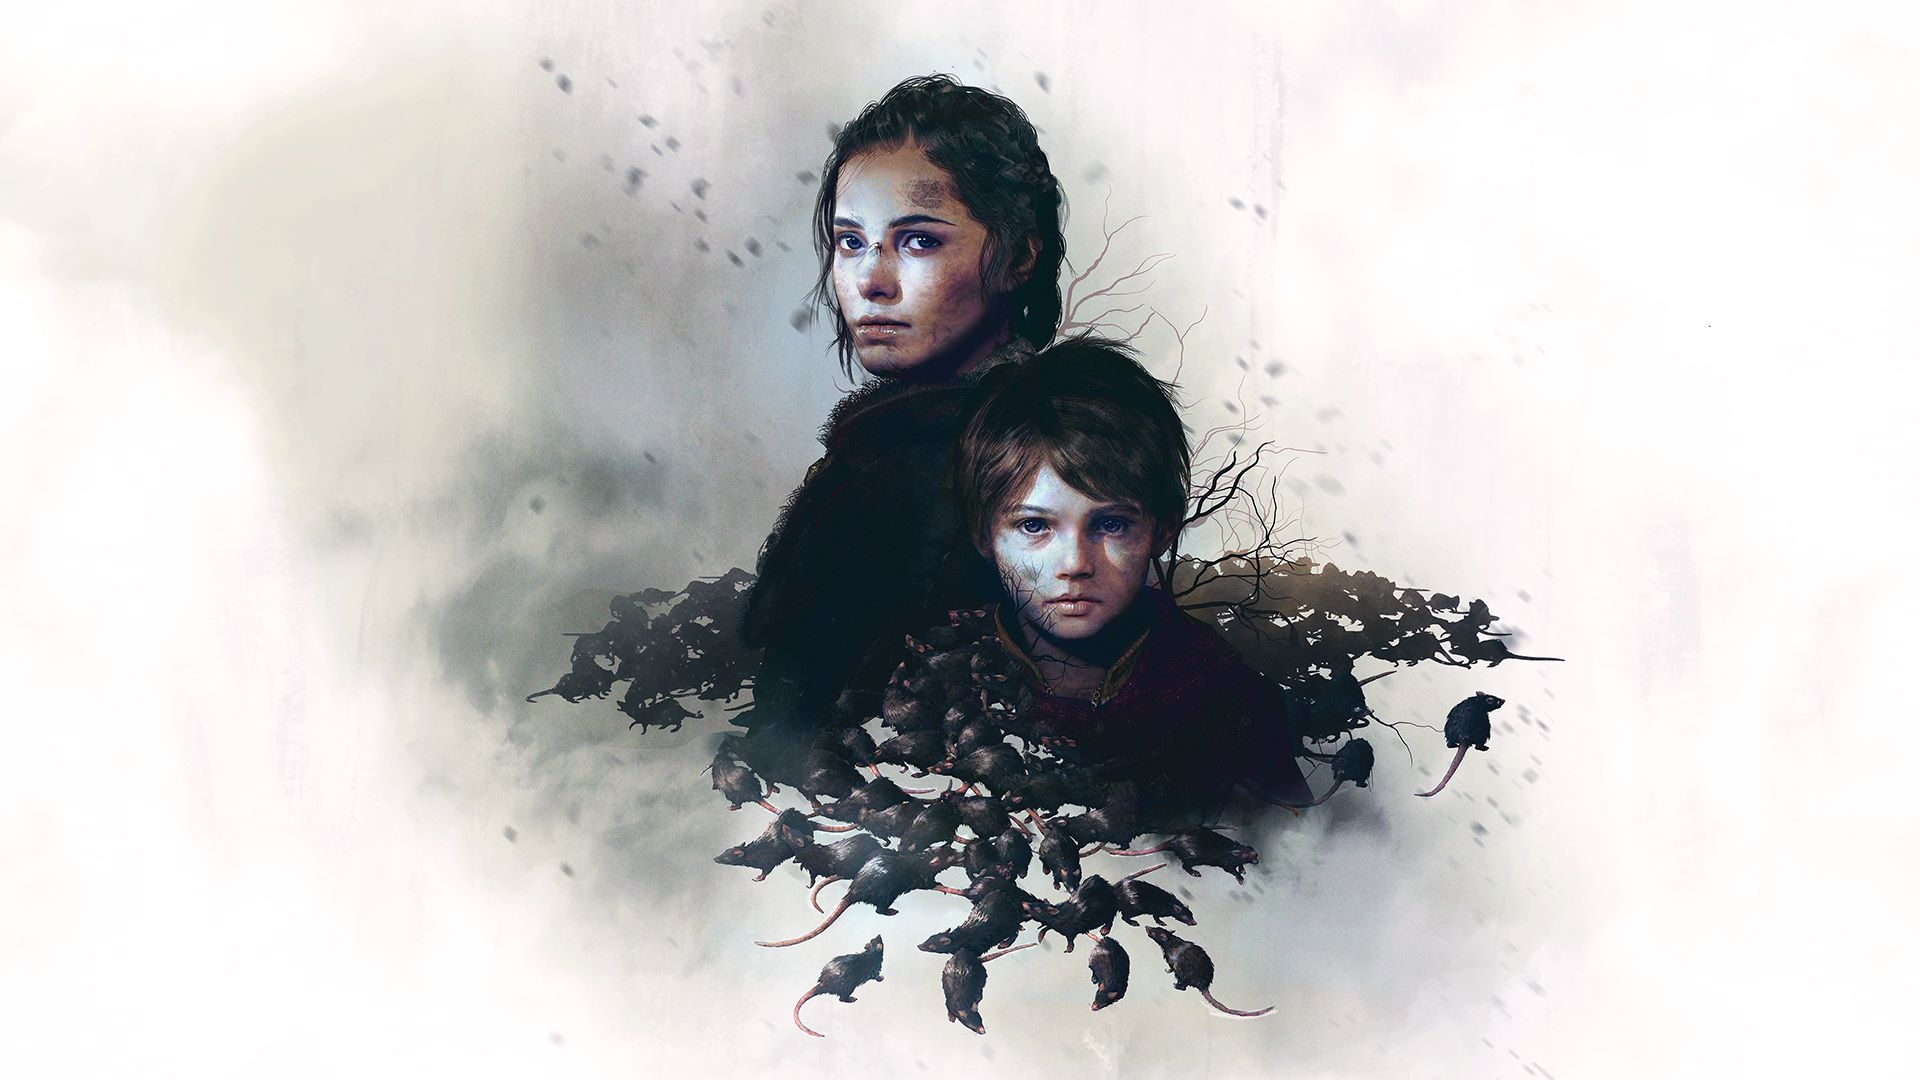 เกม A Plague Tale: Innocence